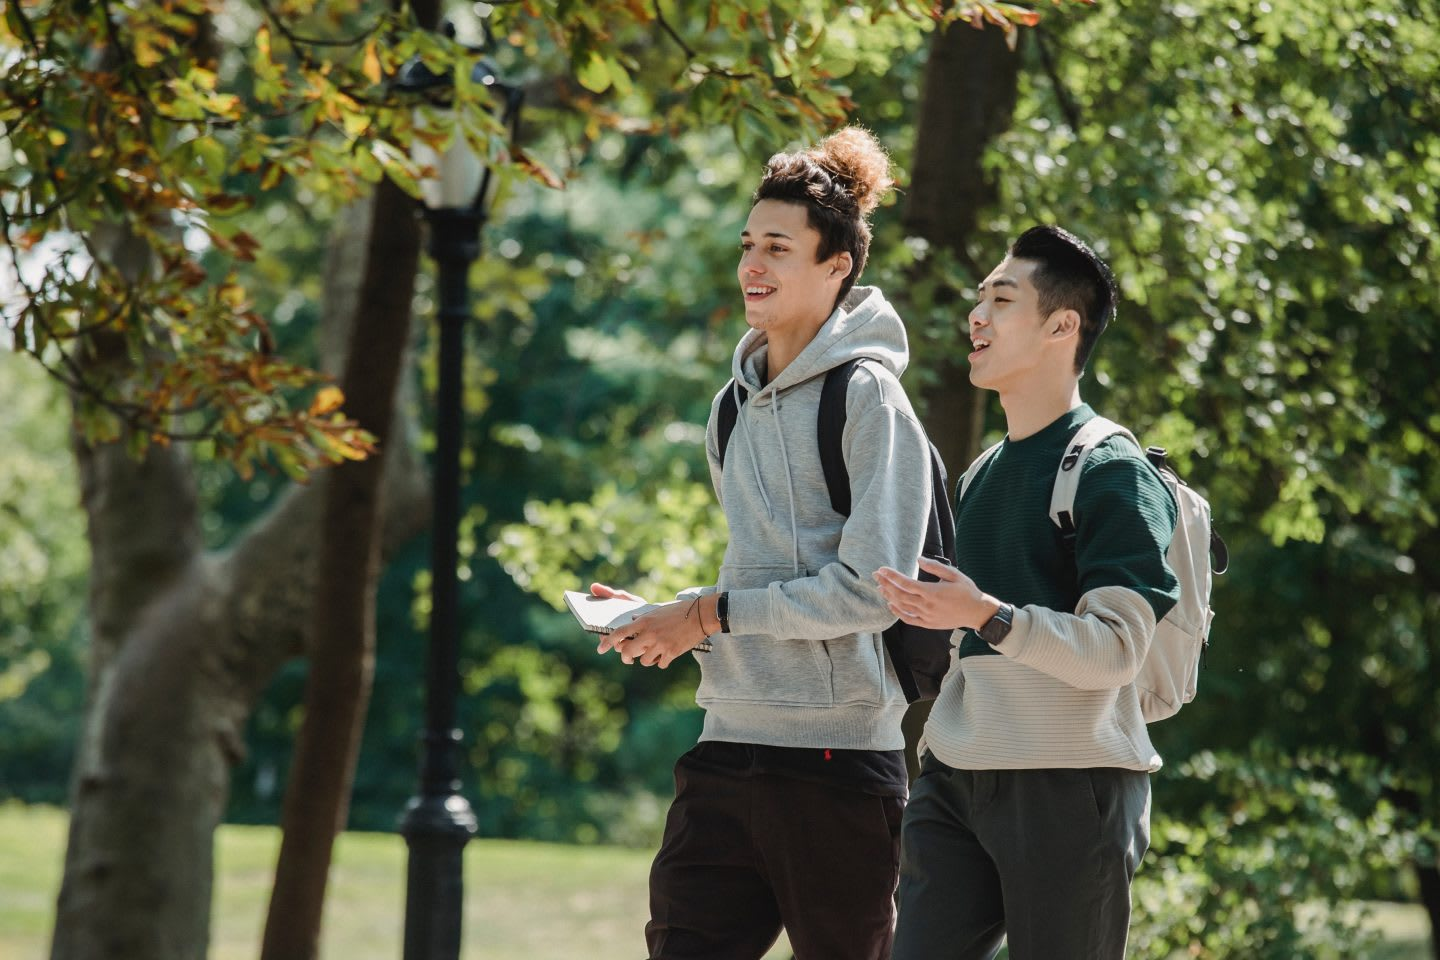 Two boys wearing backpacks and sweatshirts walking while talking, young, boys, socializing, summer, green, outdoors